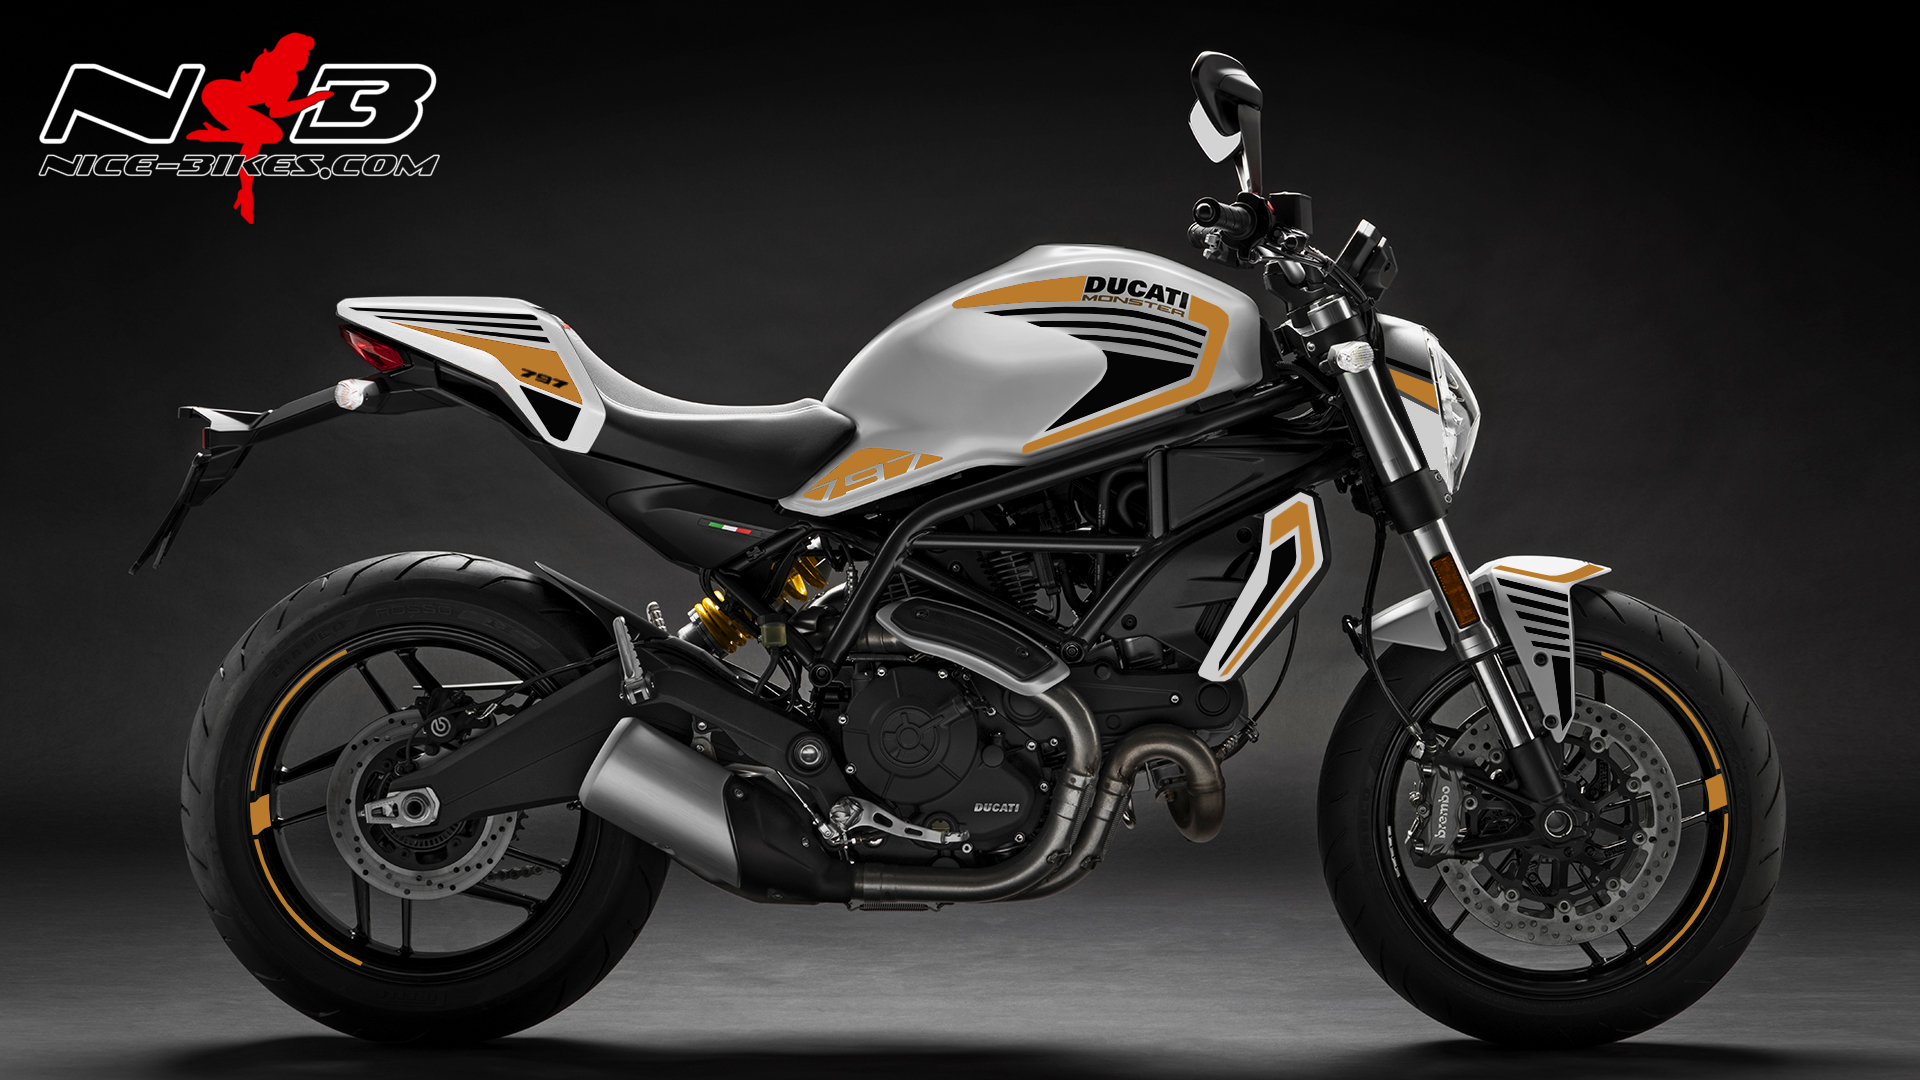 Foliendesign DUCATI  Monster 797 Bj. 2020 Olympic Gold